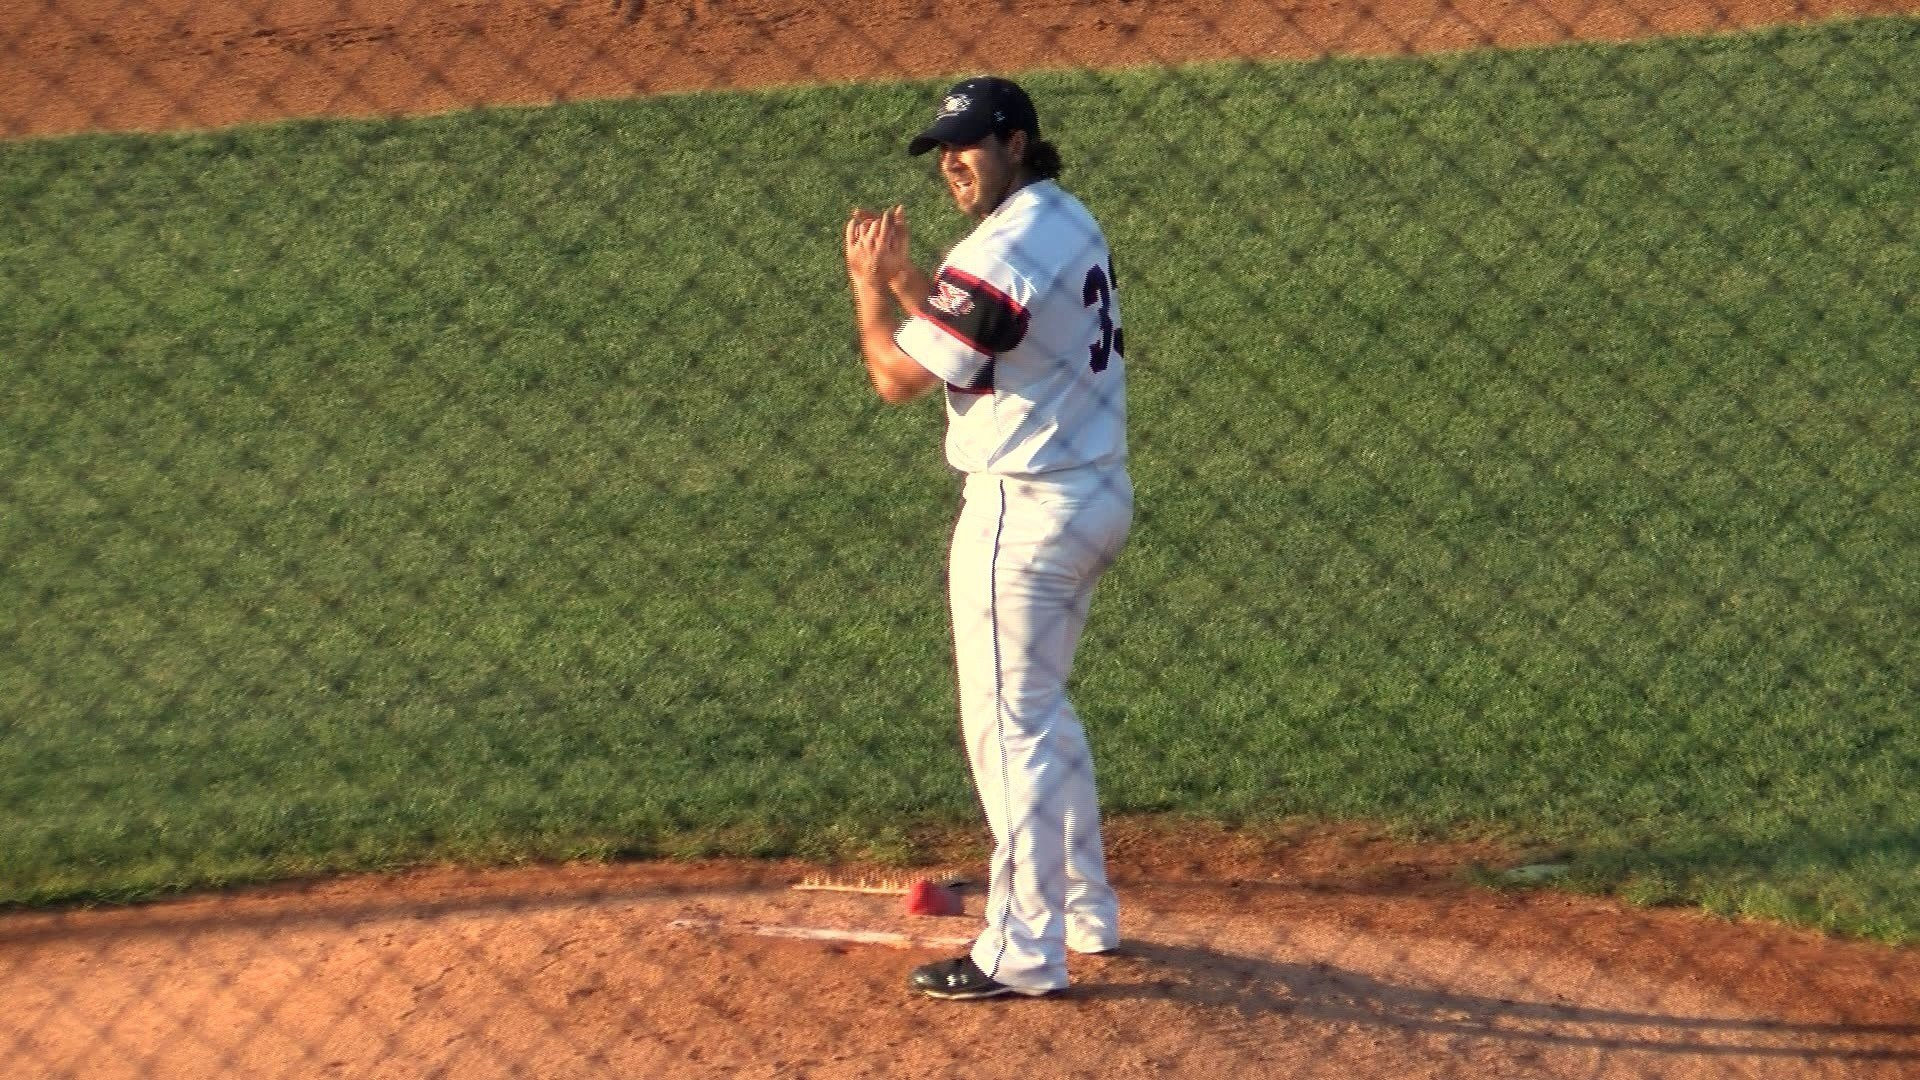 The Explorers lost to Wichita on Wednesday, 10-5.